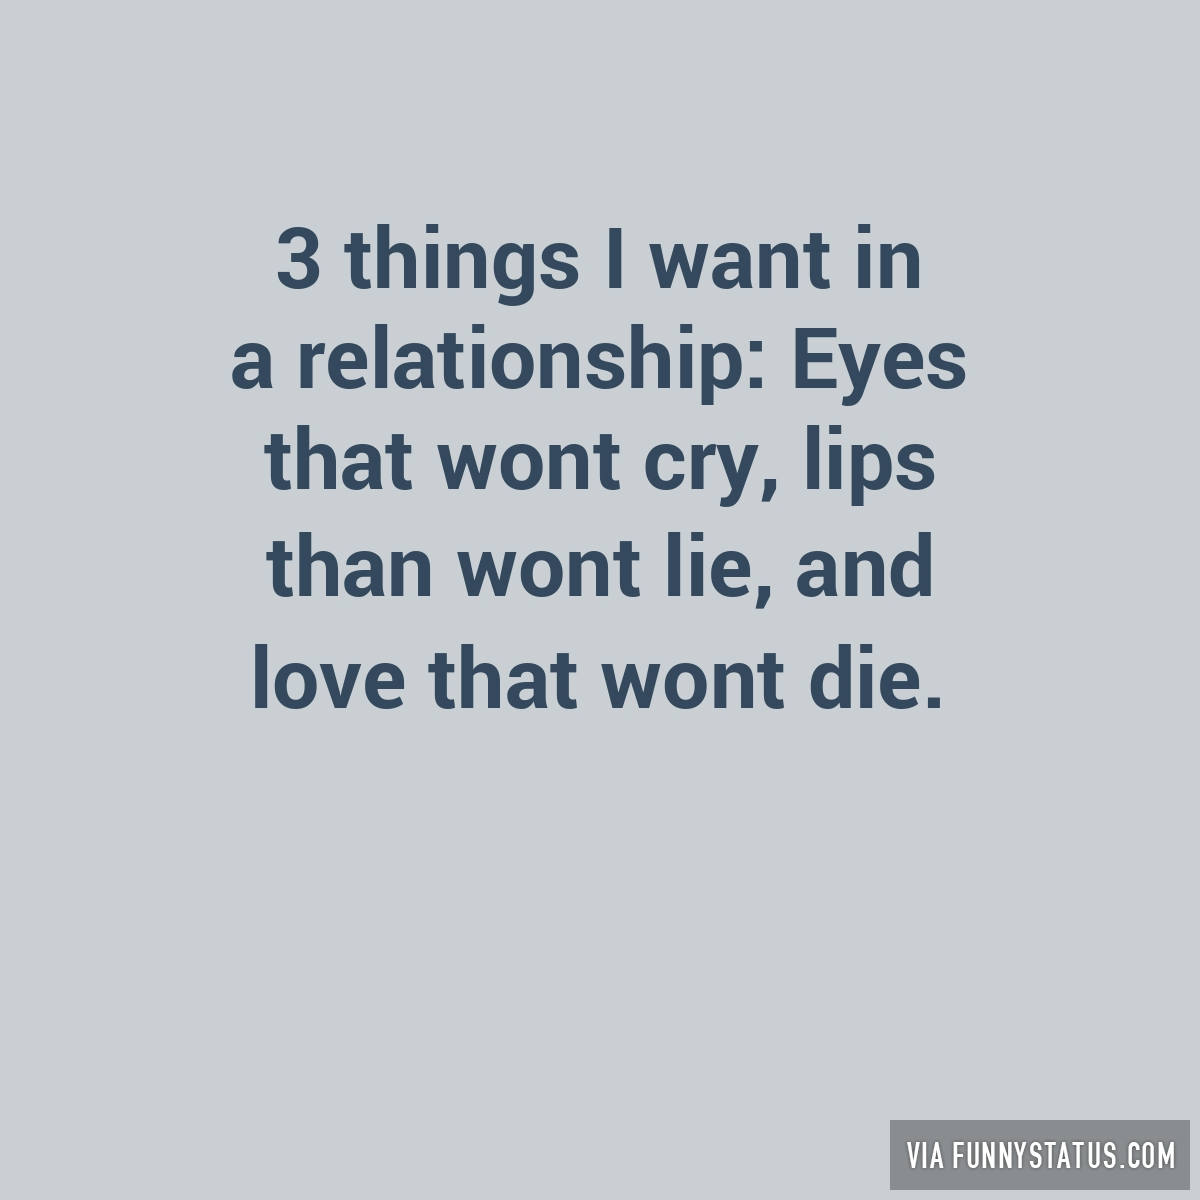 This A In Things I Relationship Want 3 turn